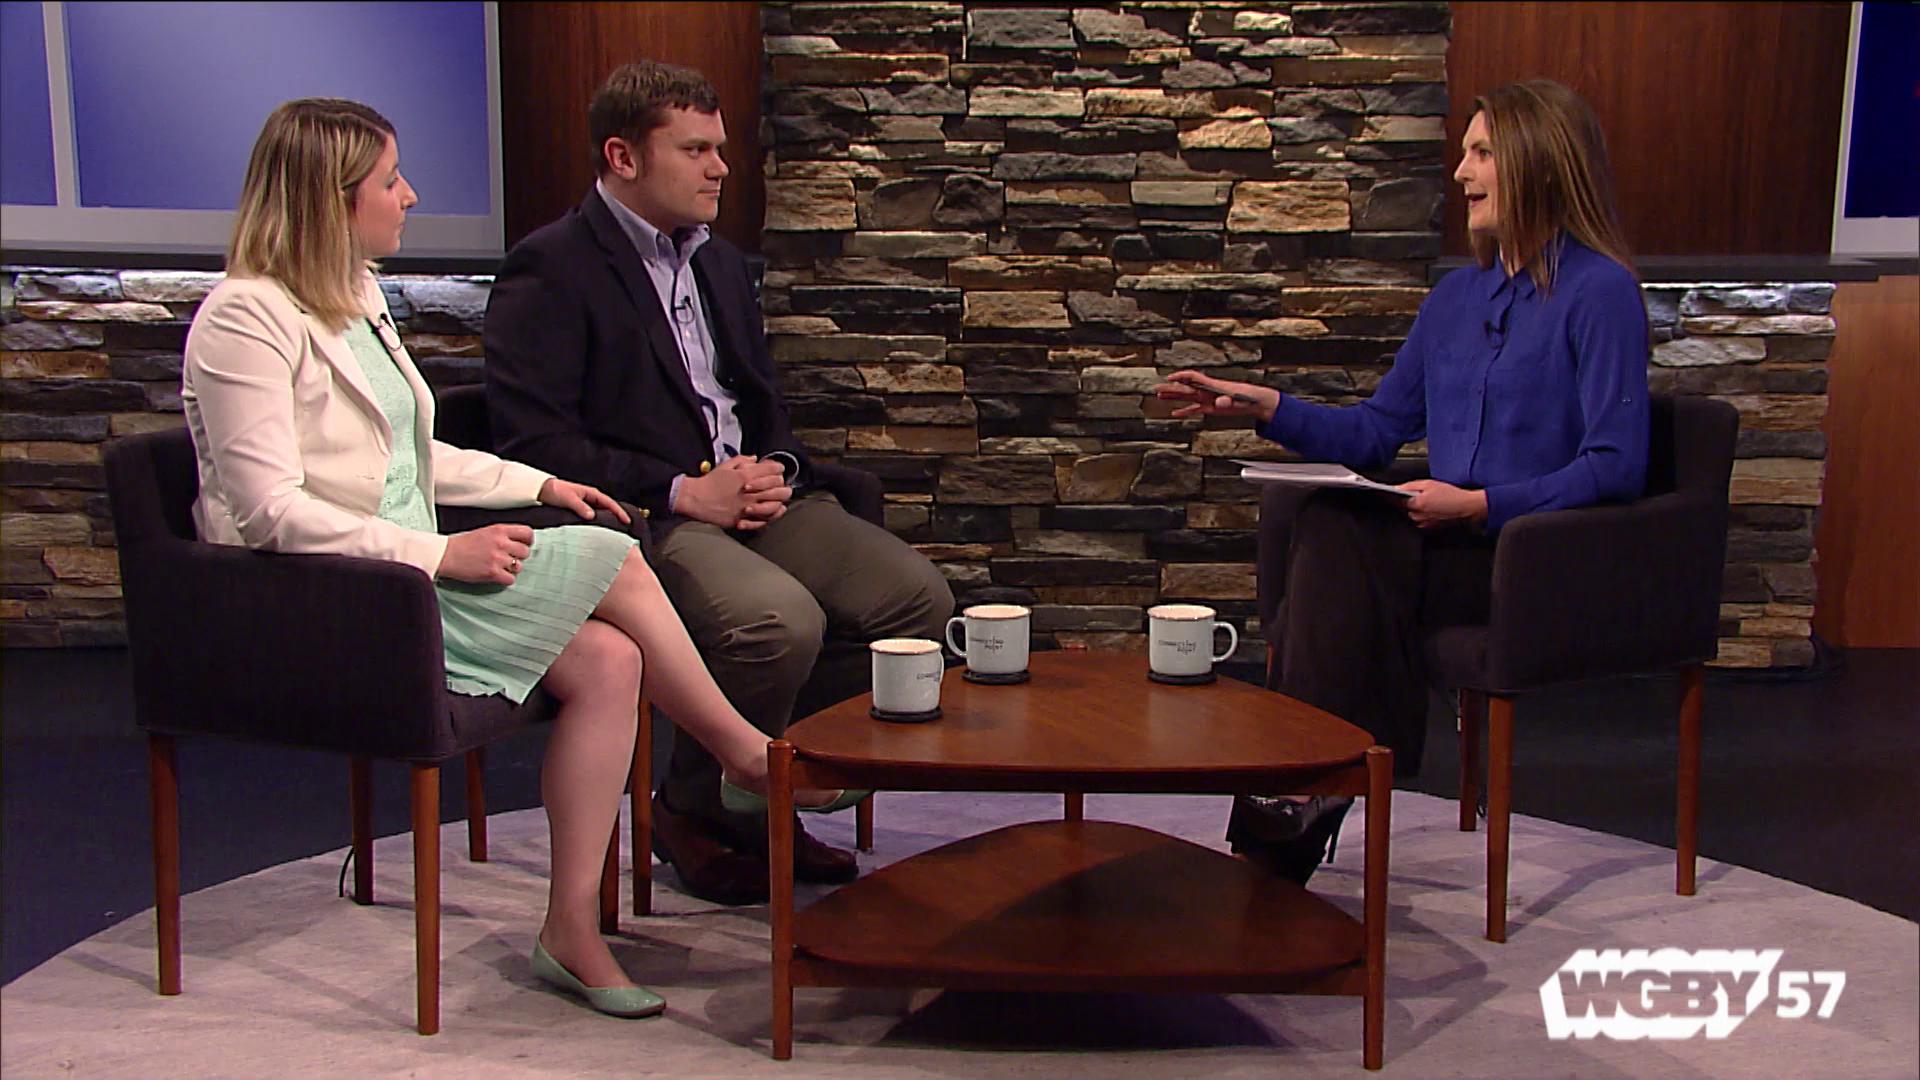 MassLive's Shannon Young and Western Mass Politics & Insight's Matt Szafranski join host Carrie Saldo to discuss the House of Representatives 2019 Massachusetts State Budget debate, and what the budget may look like when it is passed on to the State Senate for approval.